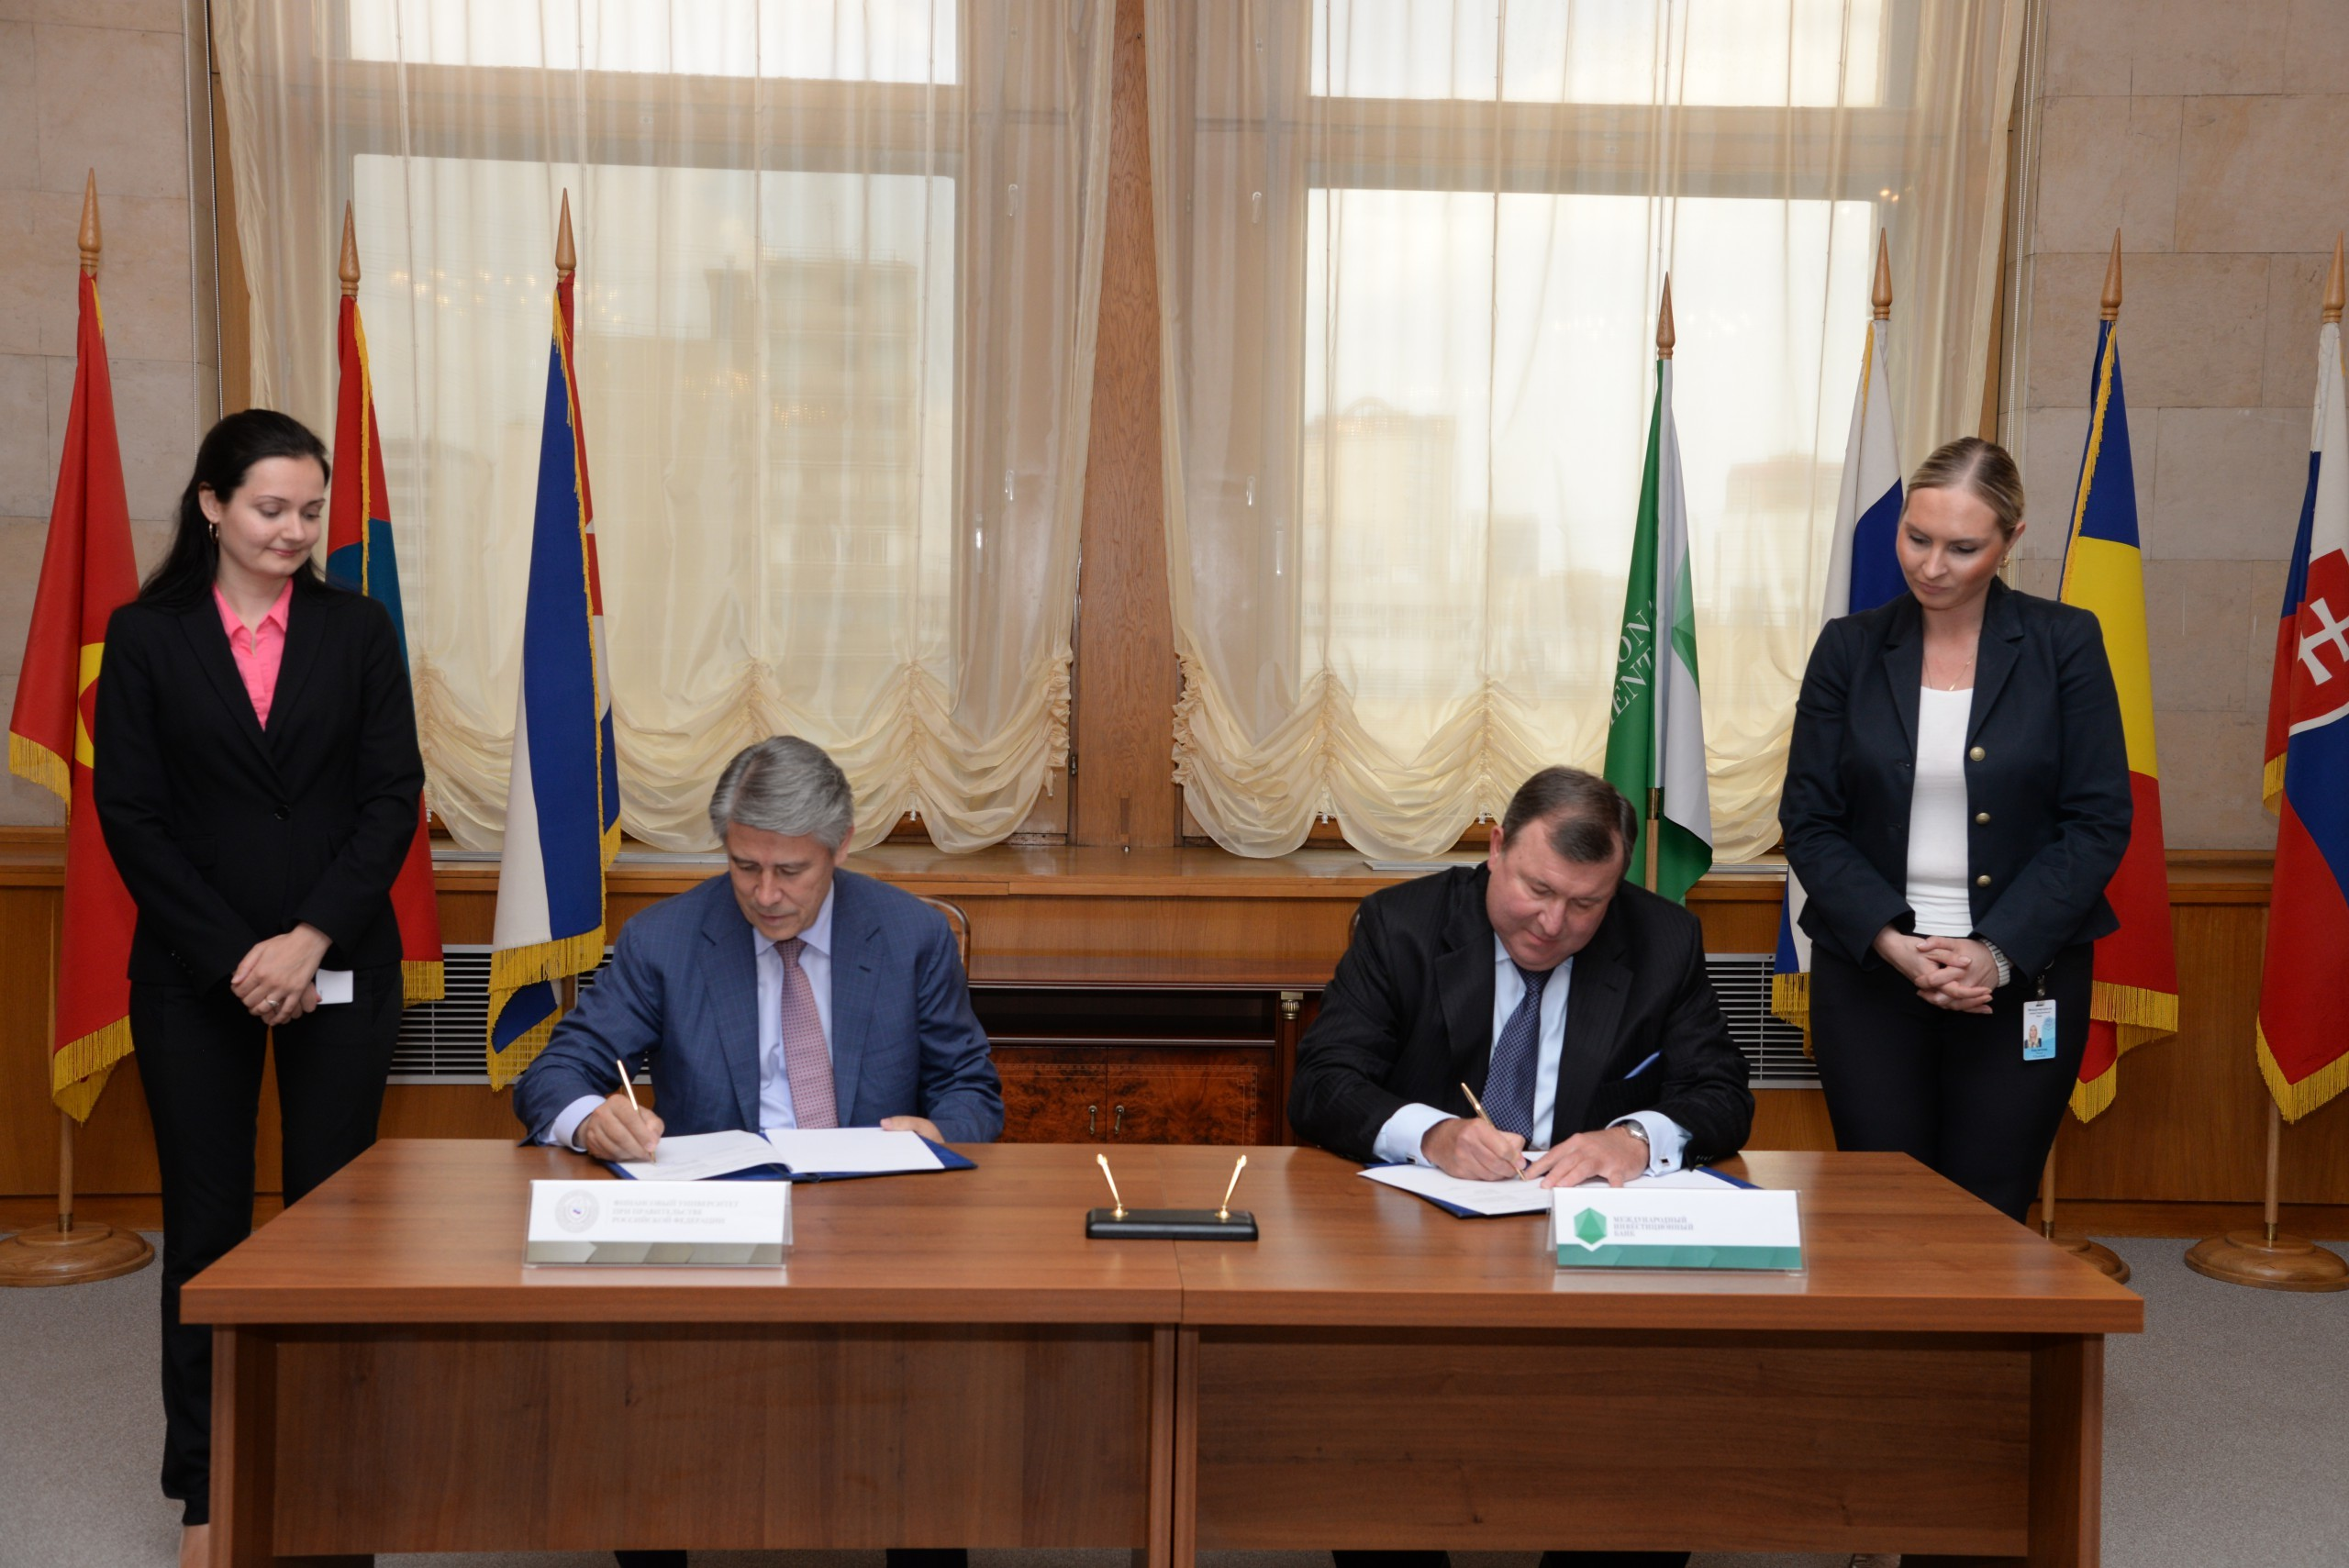 International Investment Bank and the Financial University made arrangements for cooperation